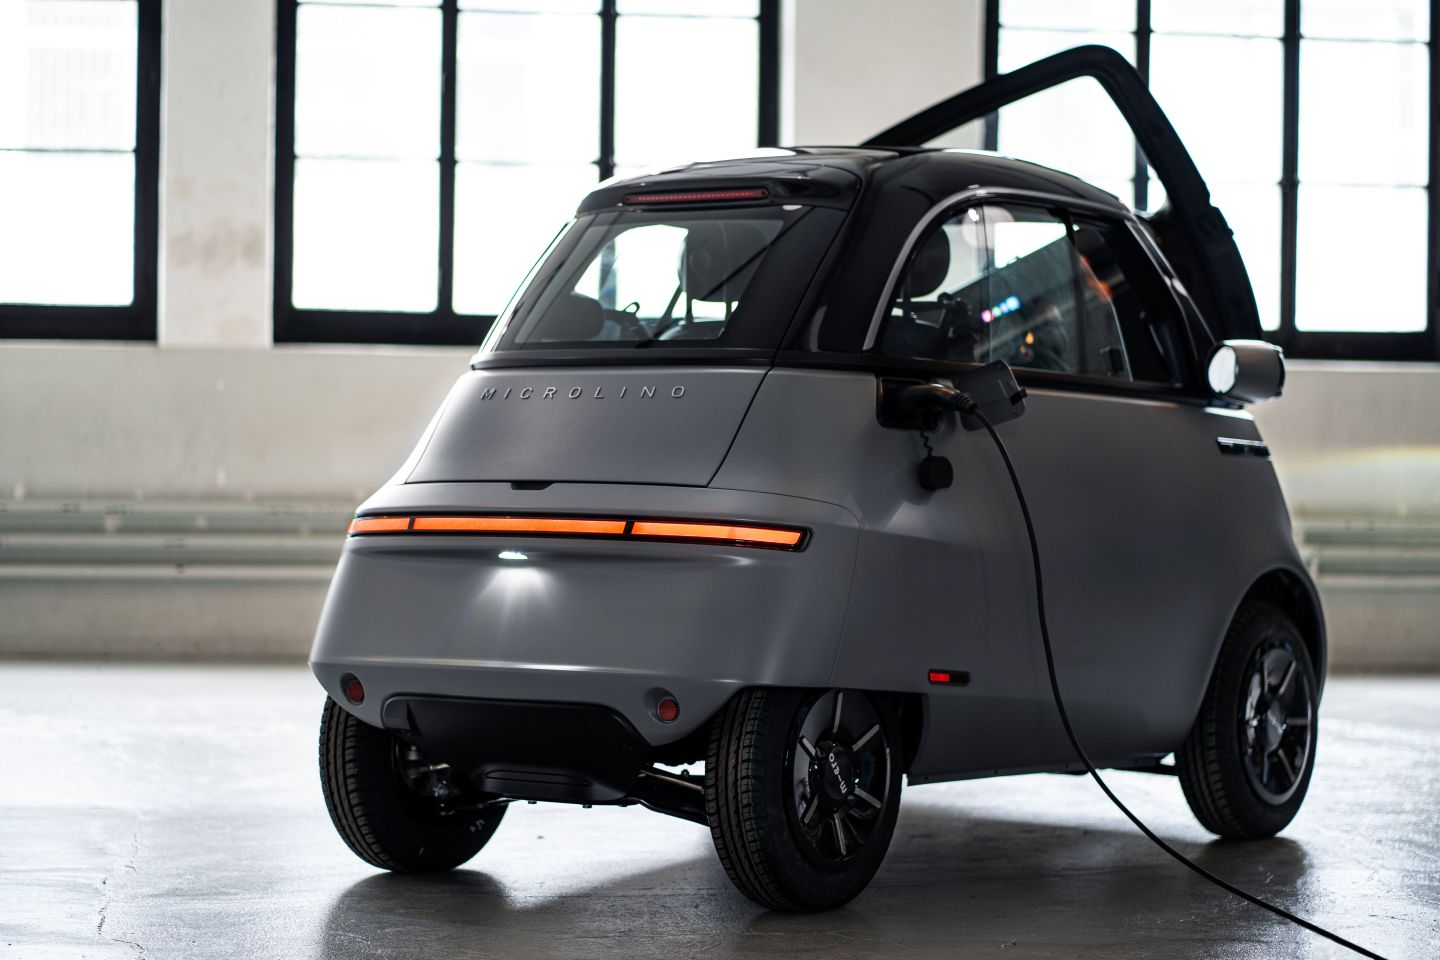 After test-driving its Microlino subcompact on city streets (see video), Micro Mobility Systems has updated its appearance and claims this is what the final production version will look like.